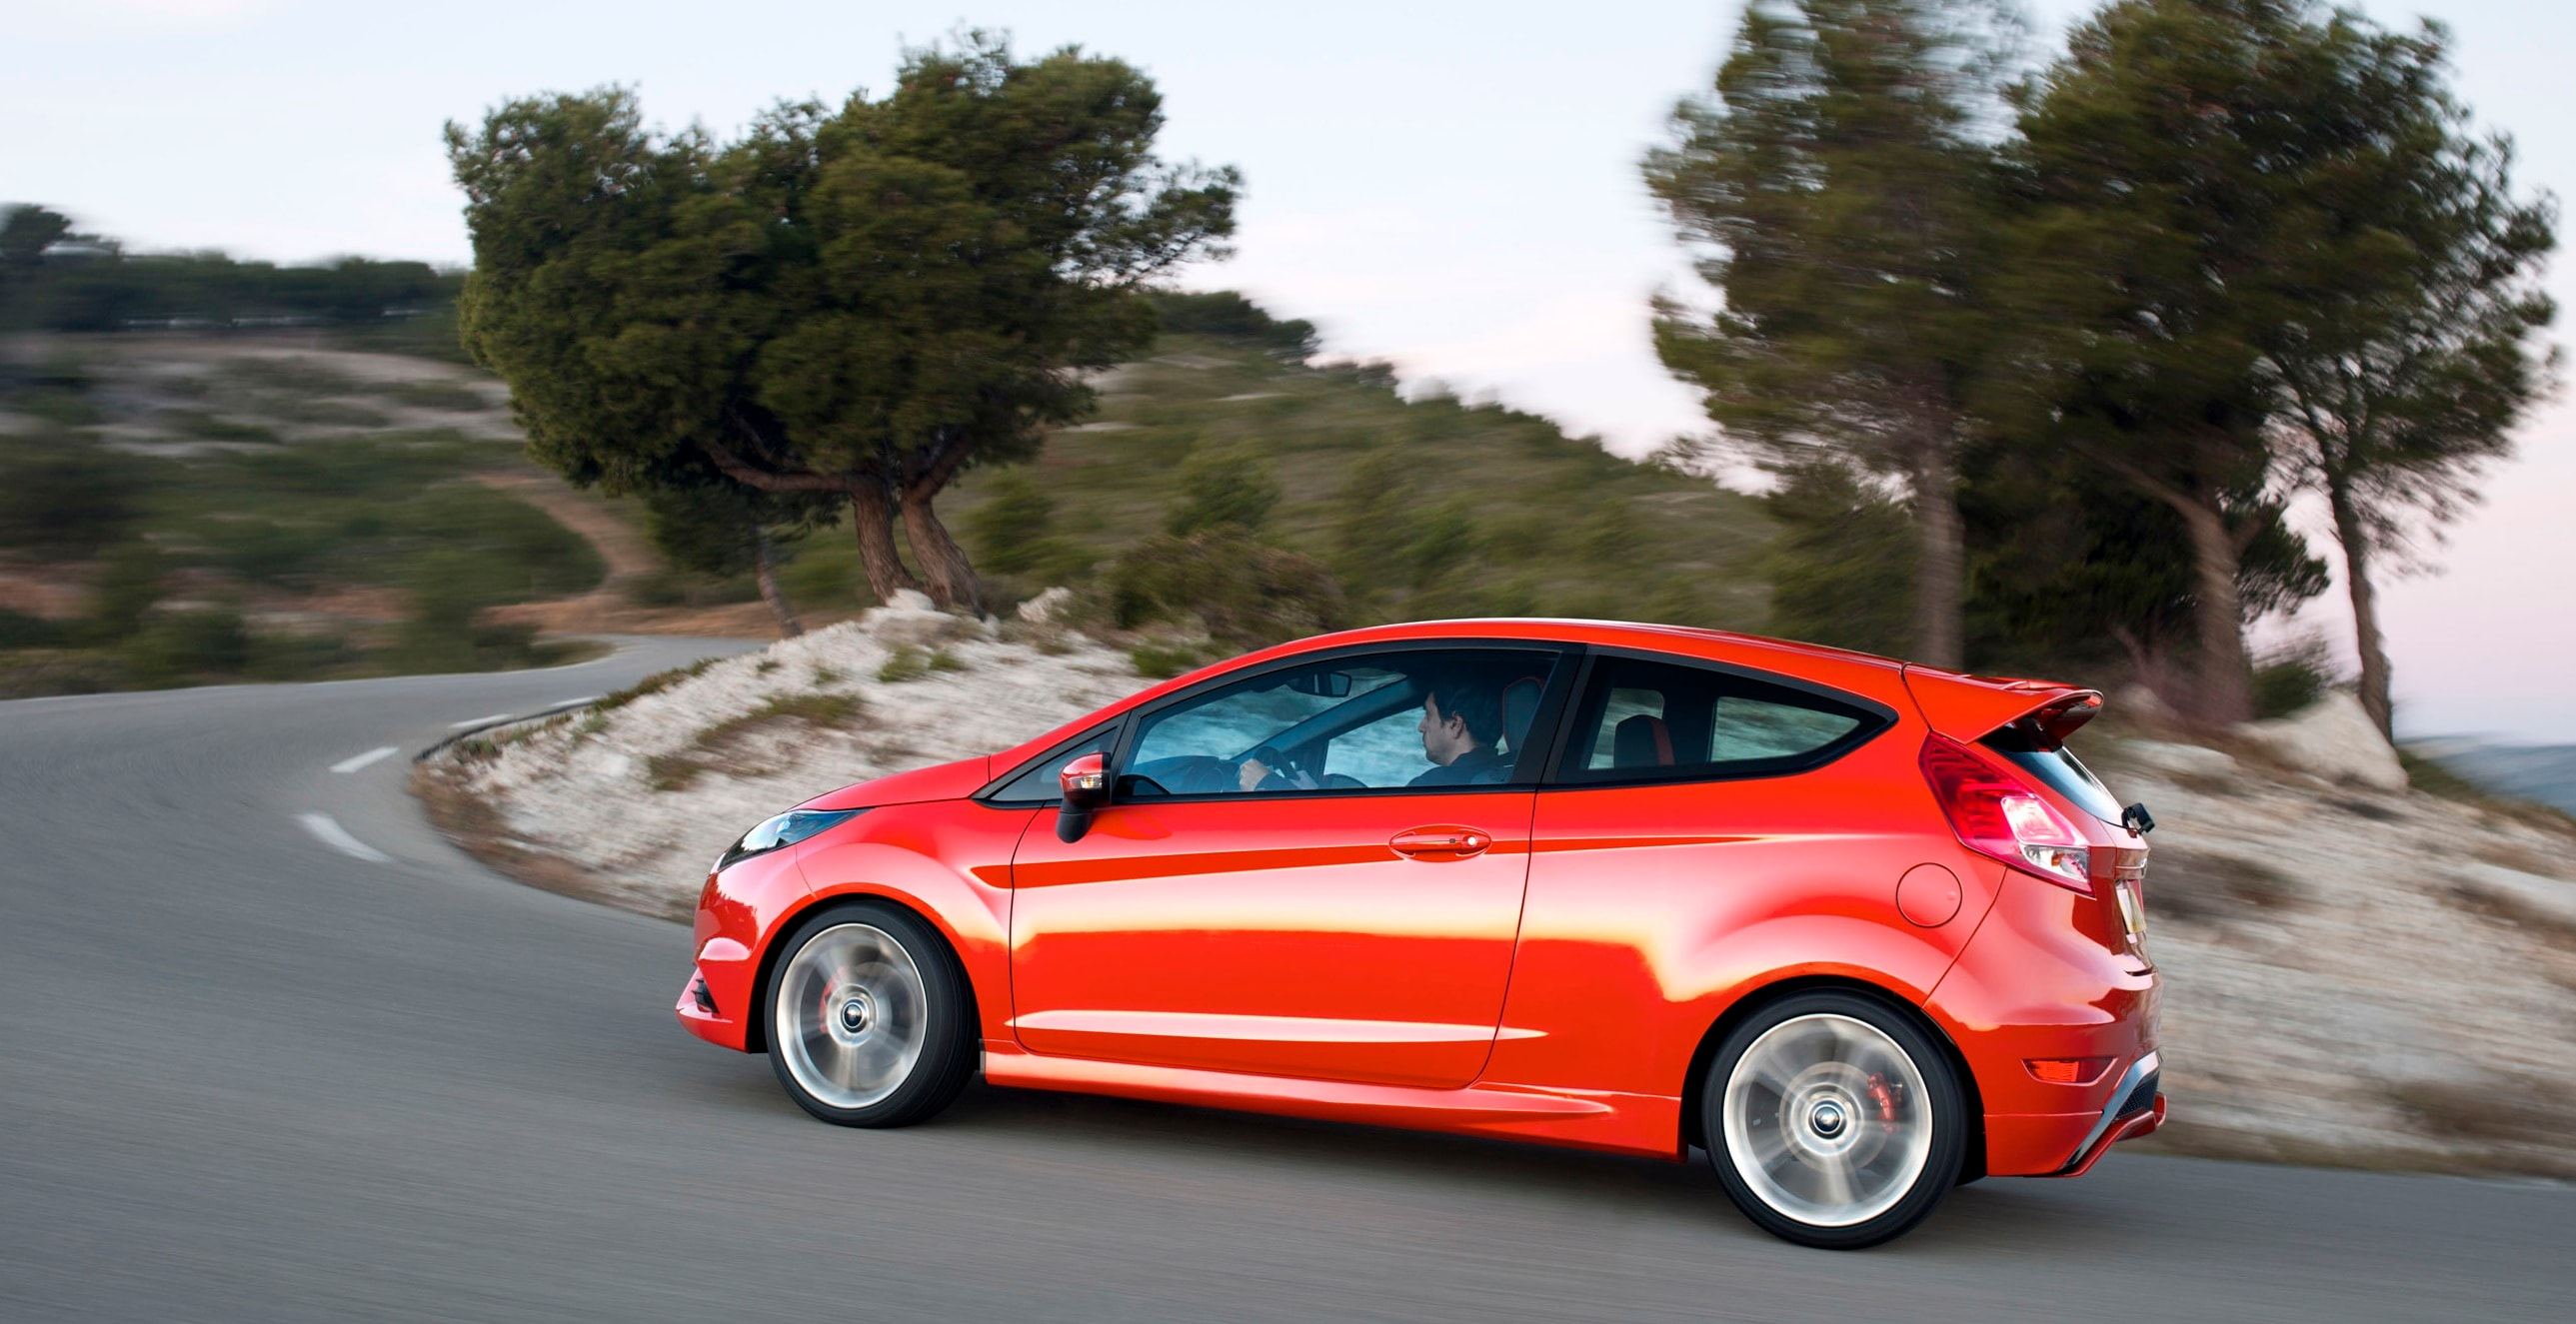 rivertown ford vehicles for sale in columbus ga 31904. Cars Review. Best American Auto & Cars Review